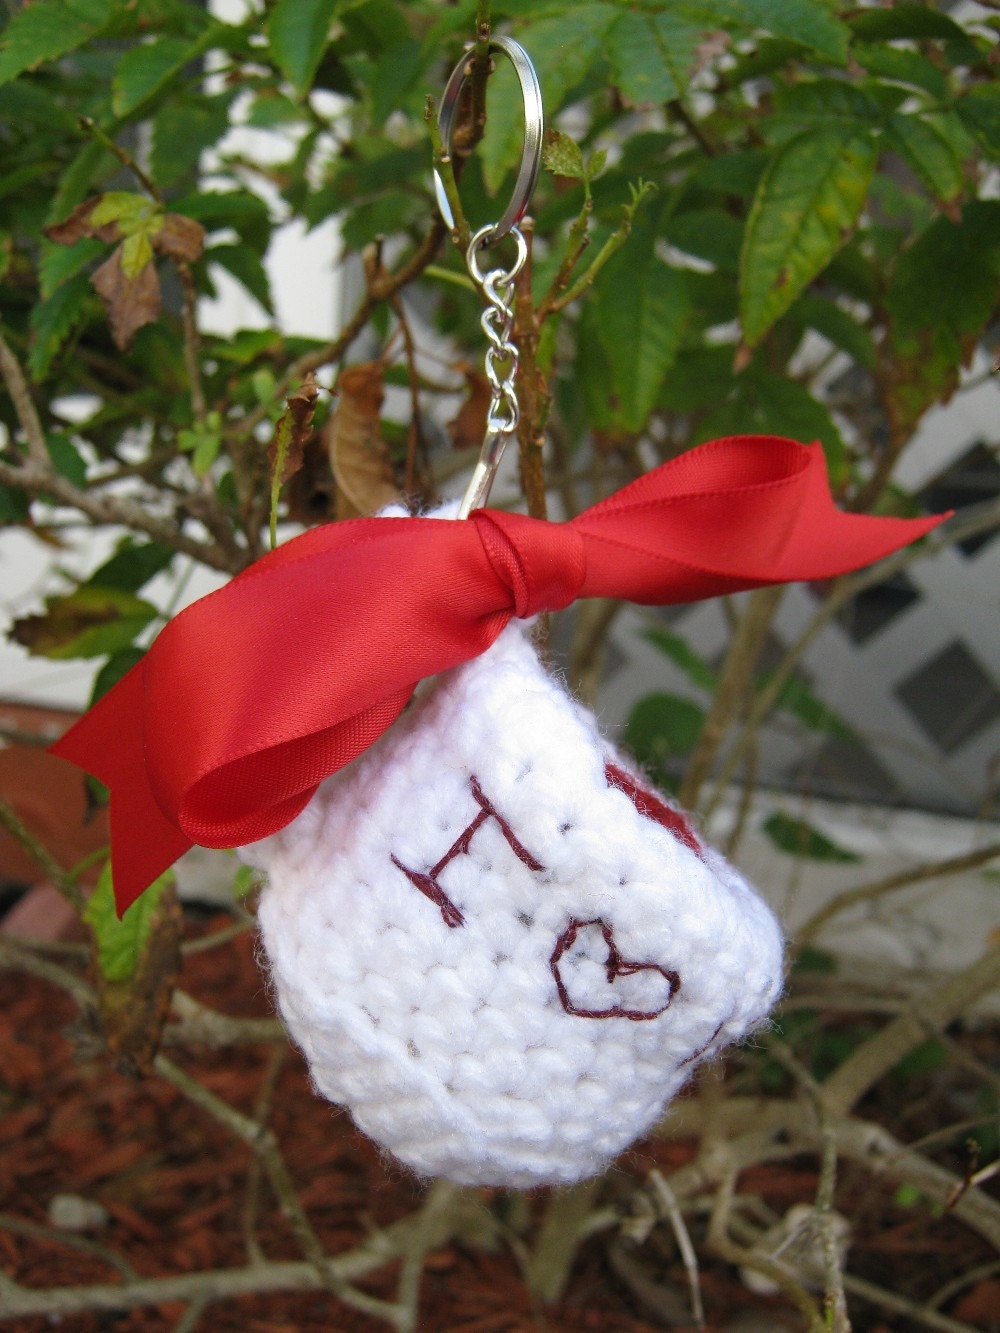 Amigurumi Keychain I Love Vamps Tea Cup by PinkFrog4U on Etsy from etsy.com